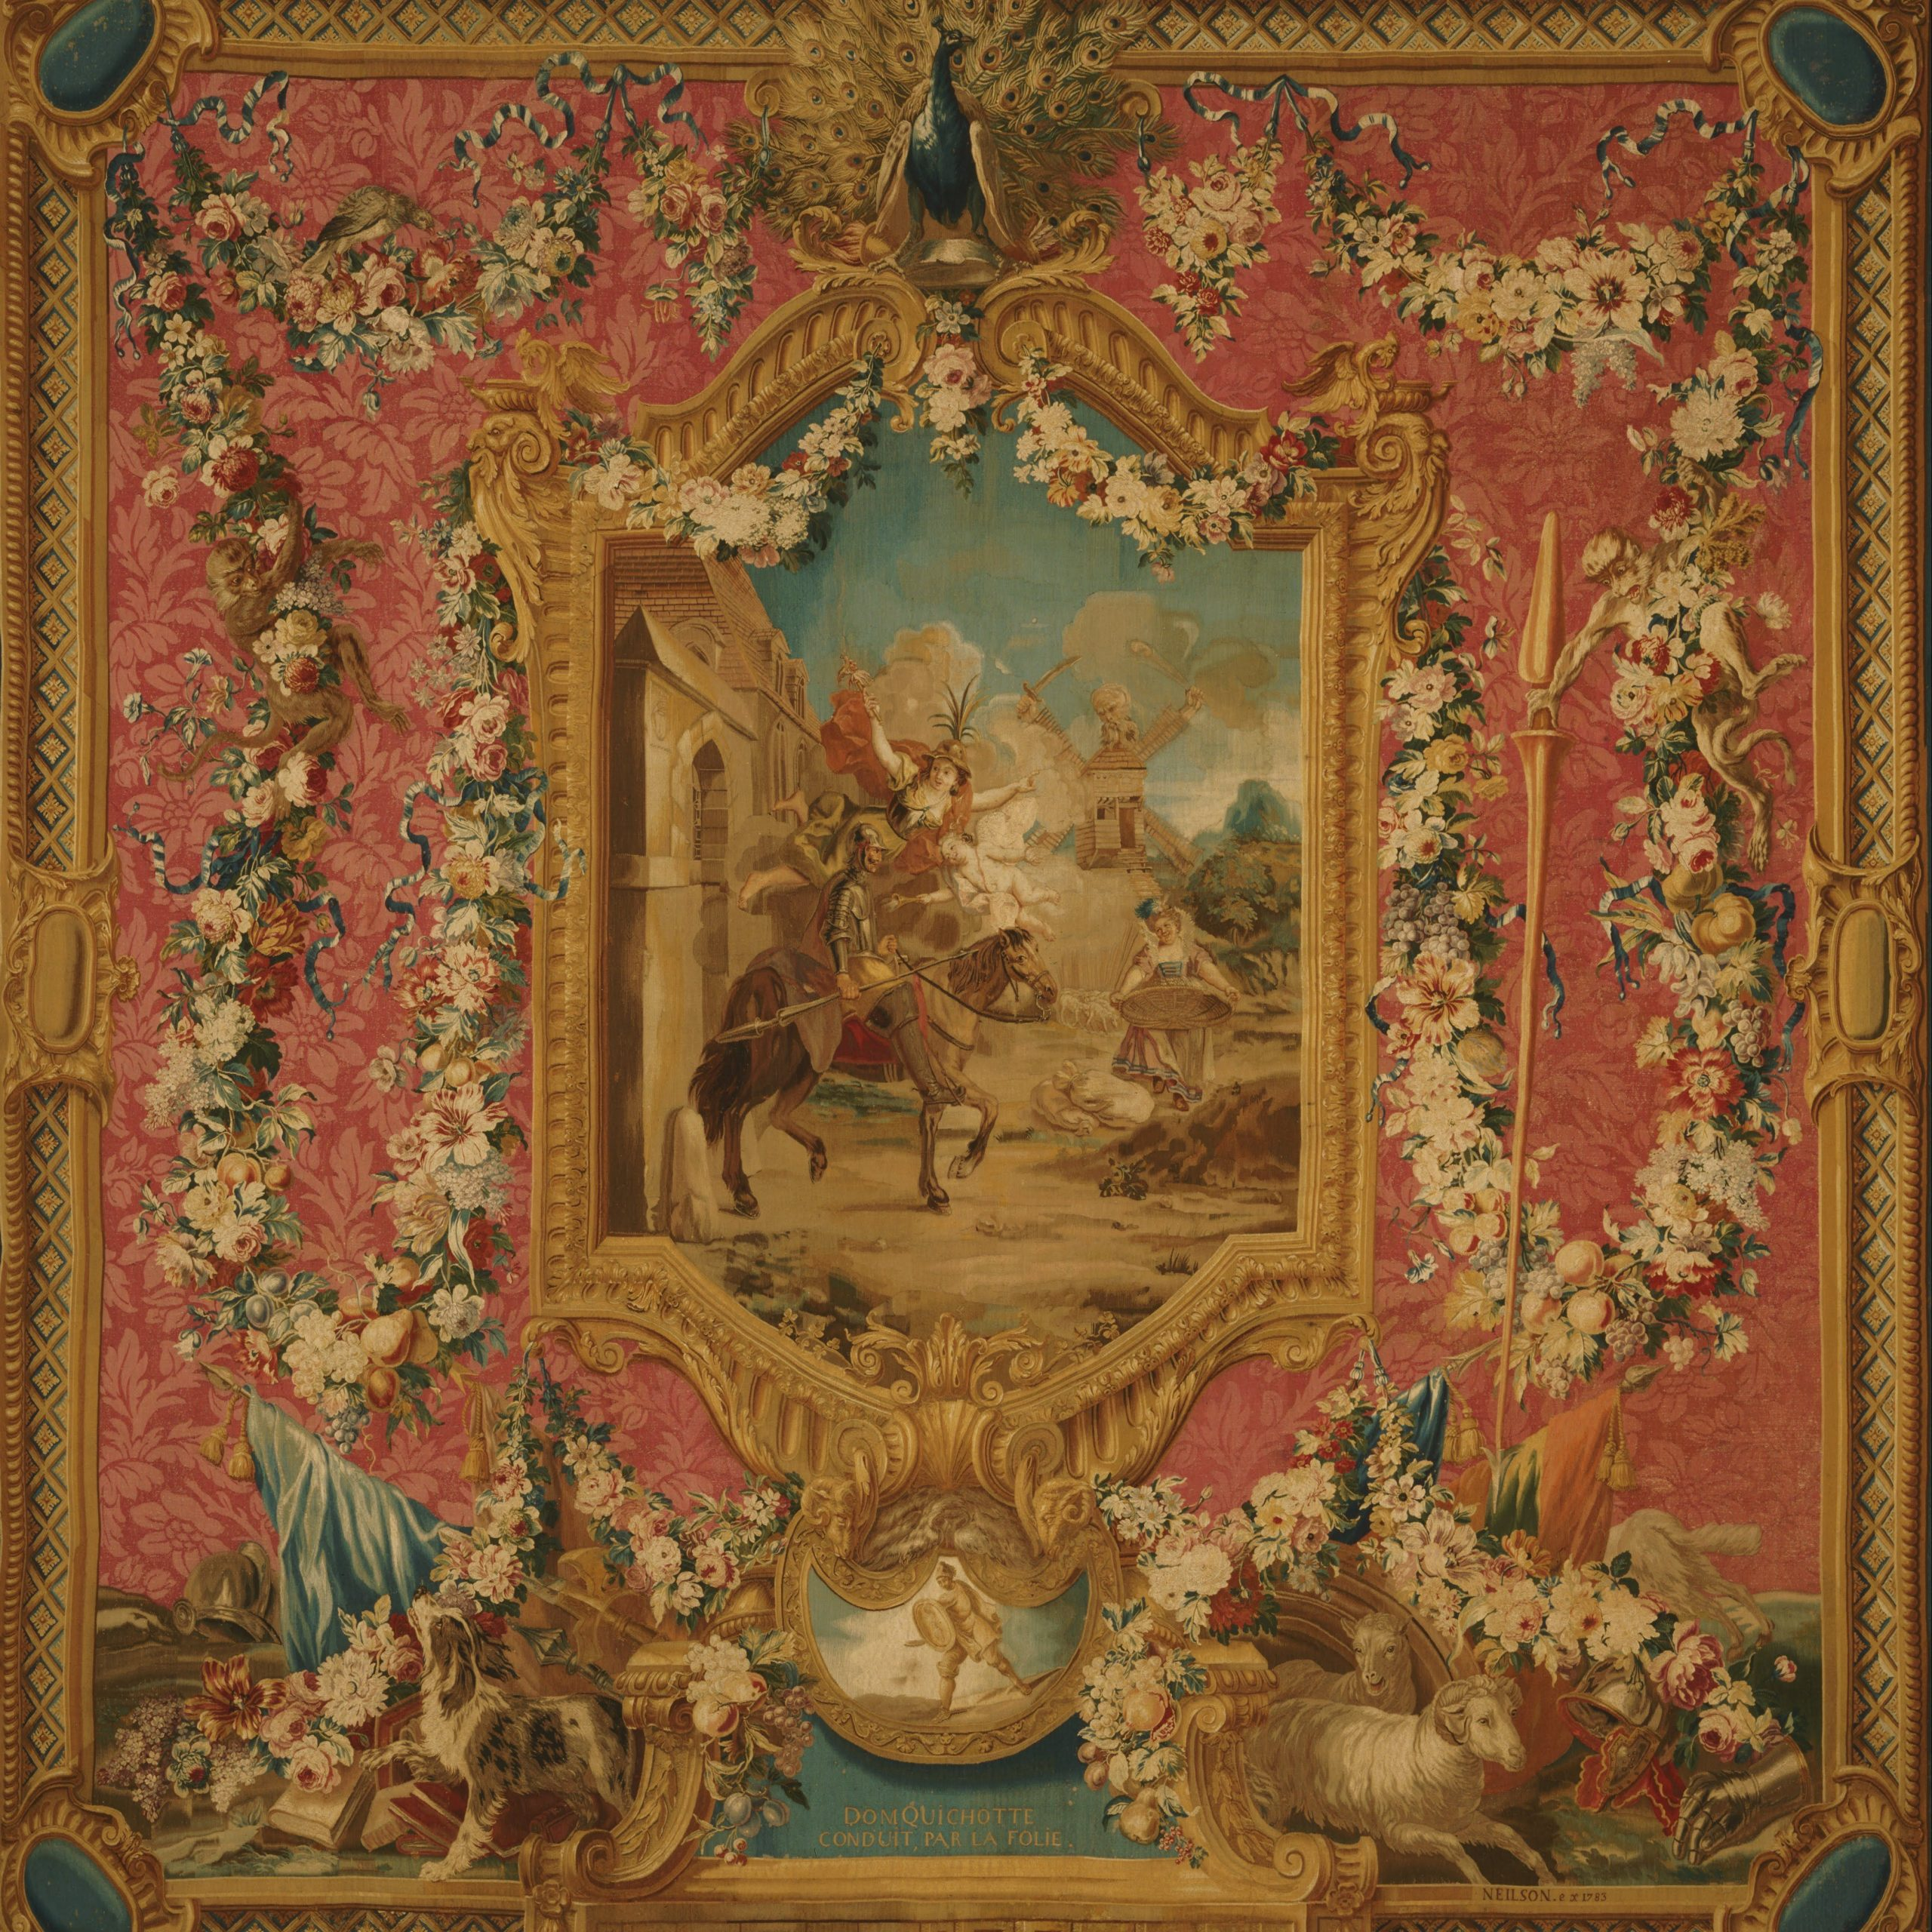 Woven At The Gobelins Tapestry Manufactory, Paris, 1699 For Latest Grandes Armoiries I European Tapestries (View 11 of 20)